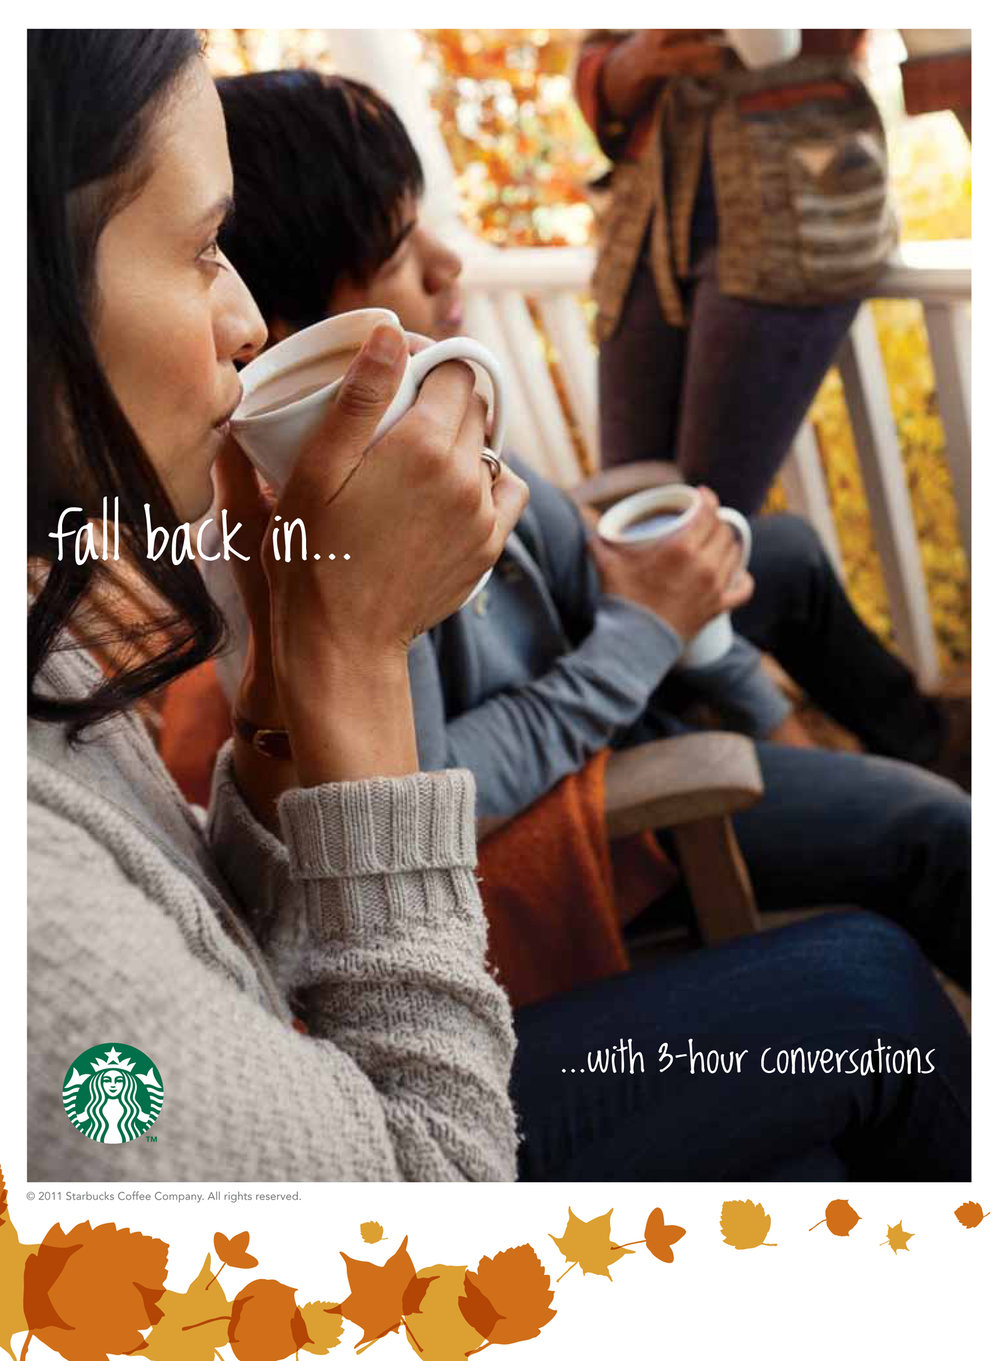 Starbucks Bryan Sheffield BBDO